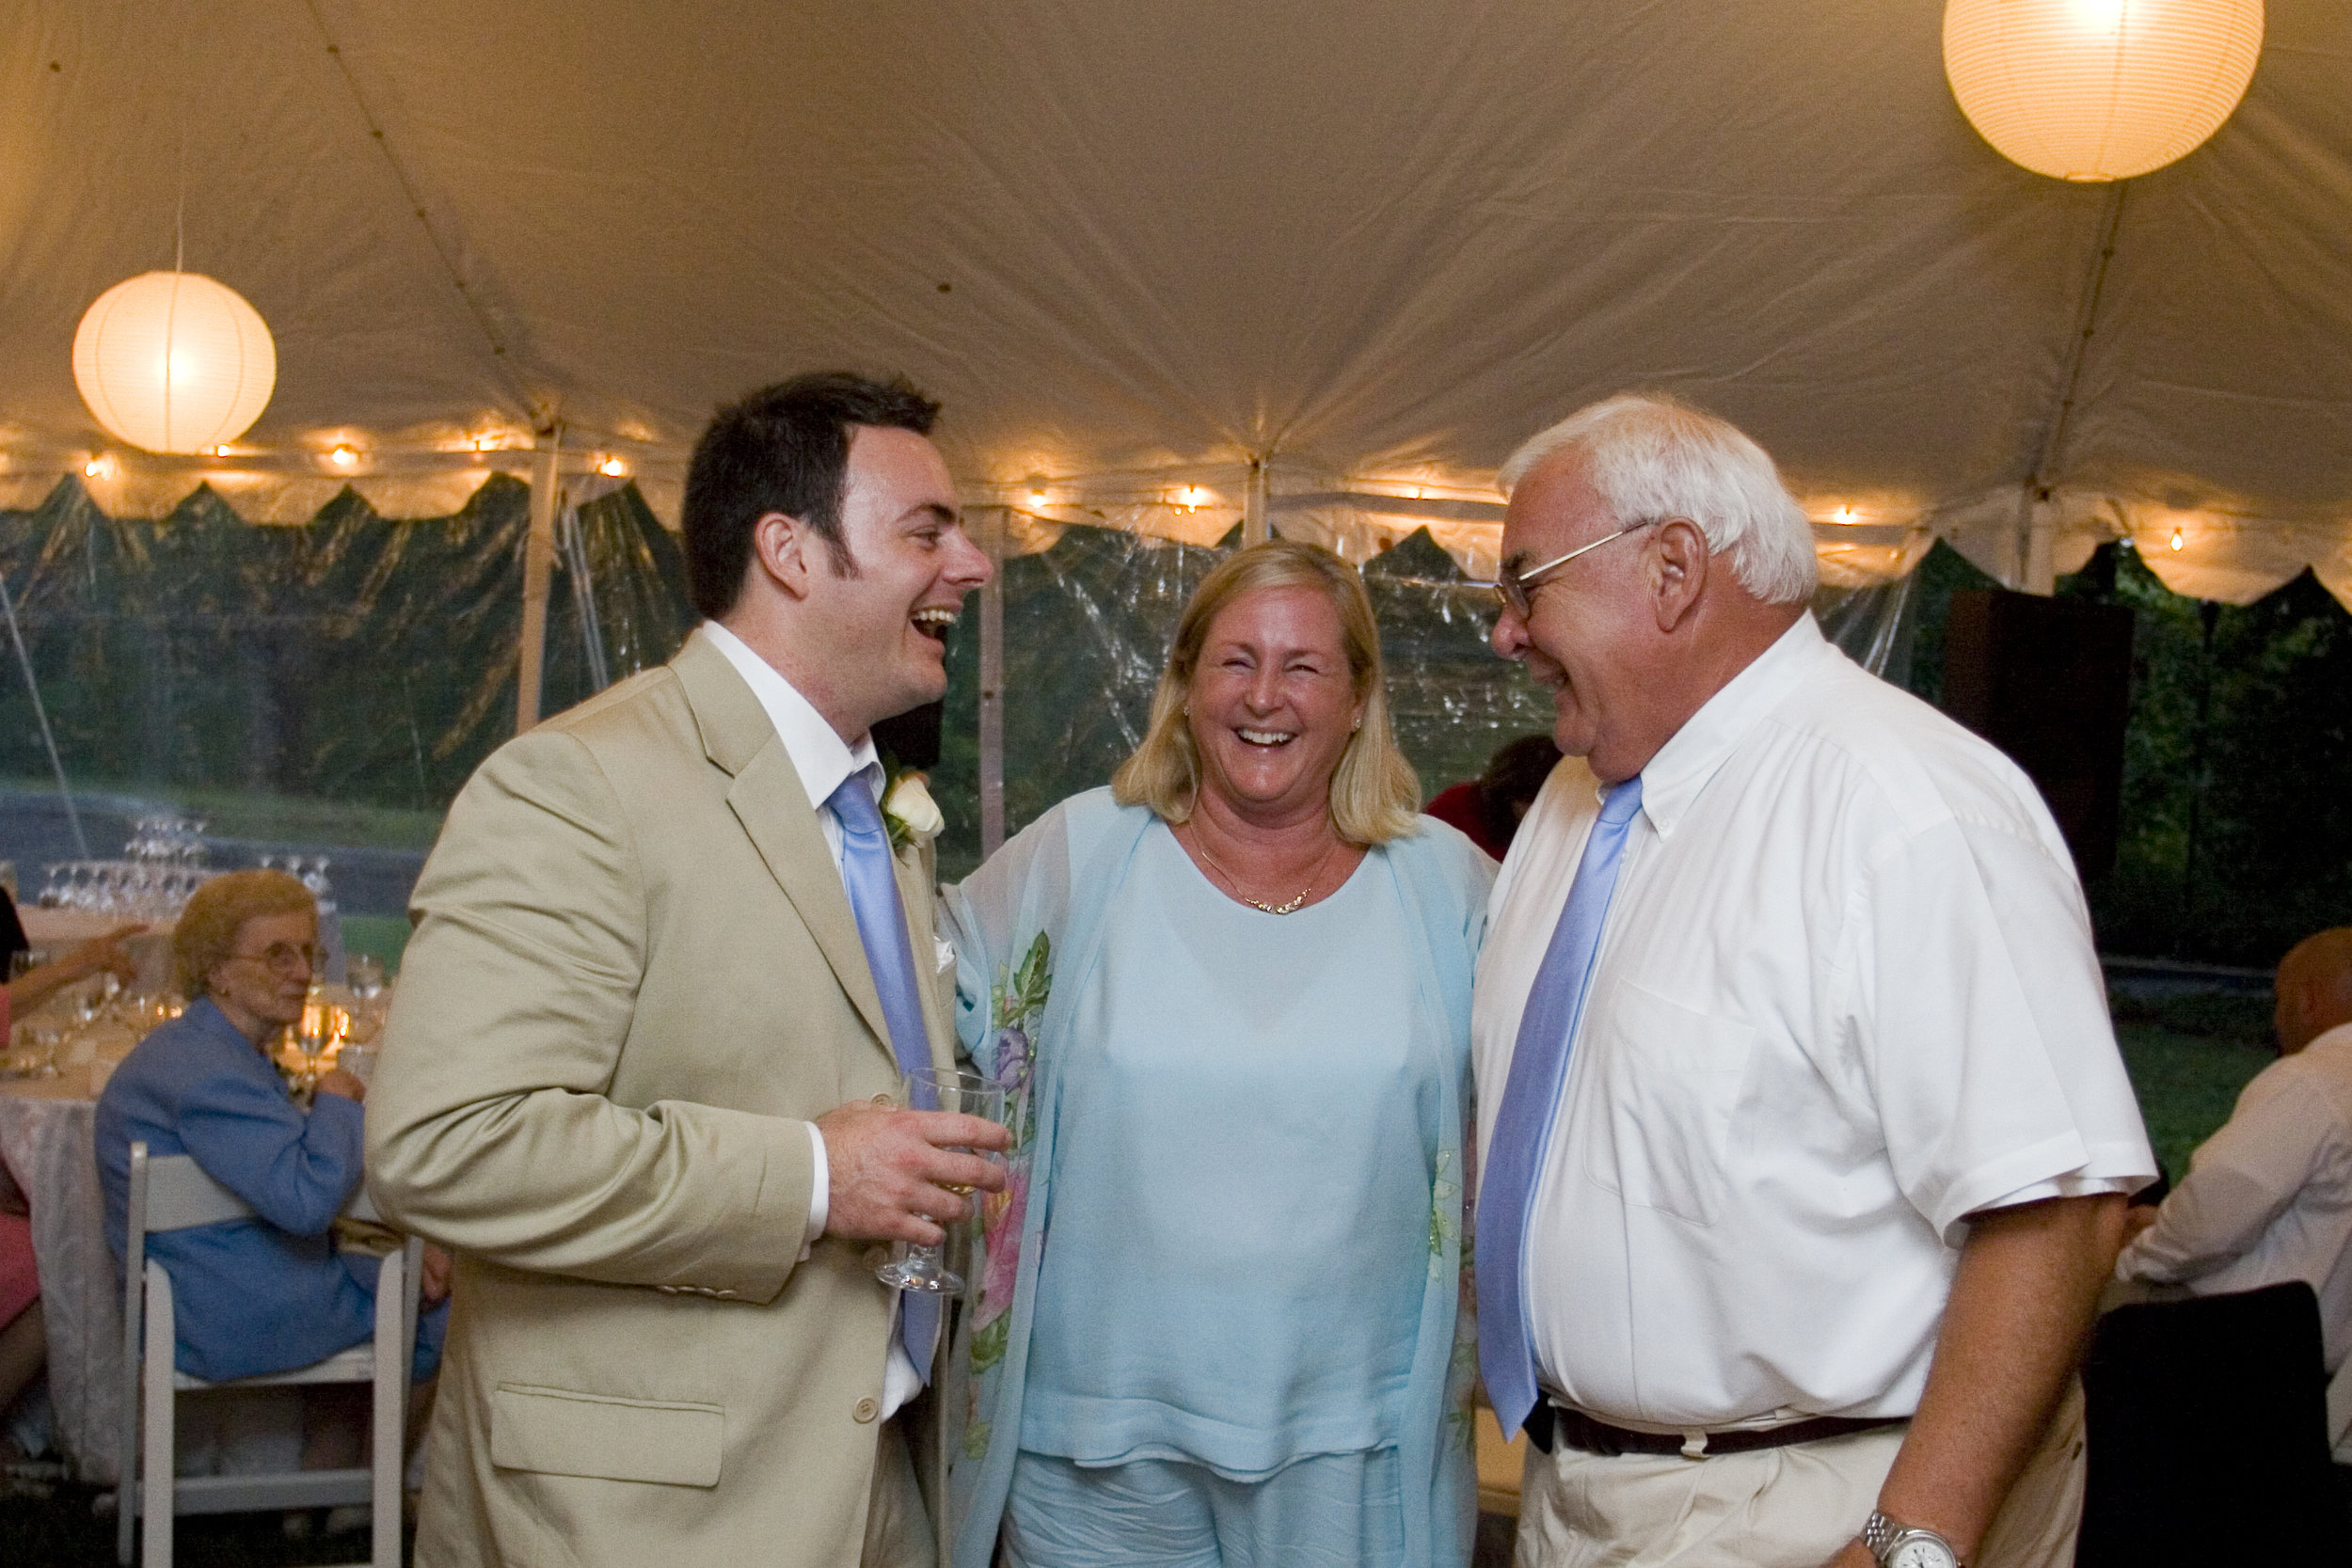 Sharing a laugh with Big Kahuna and my Step-Mother at my wedding (2006)